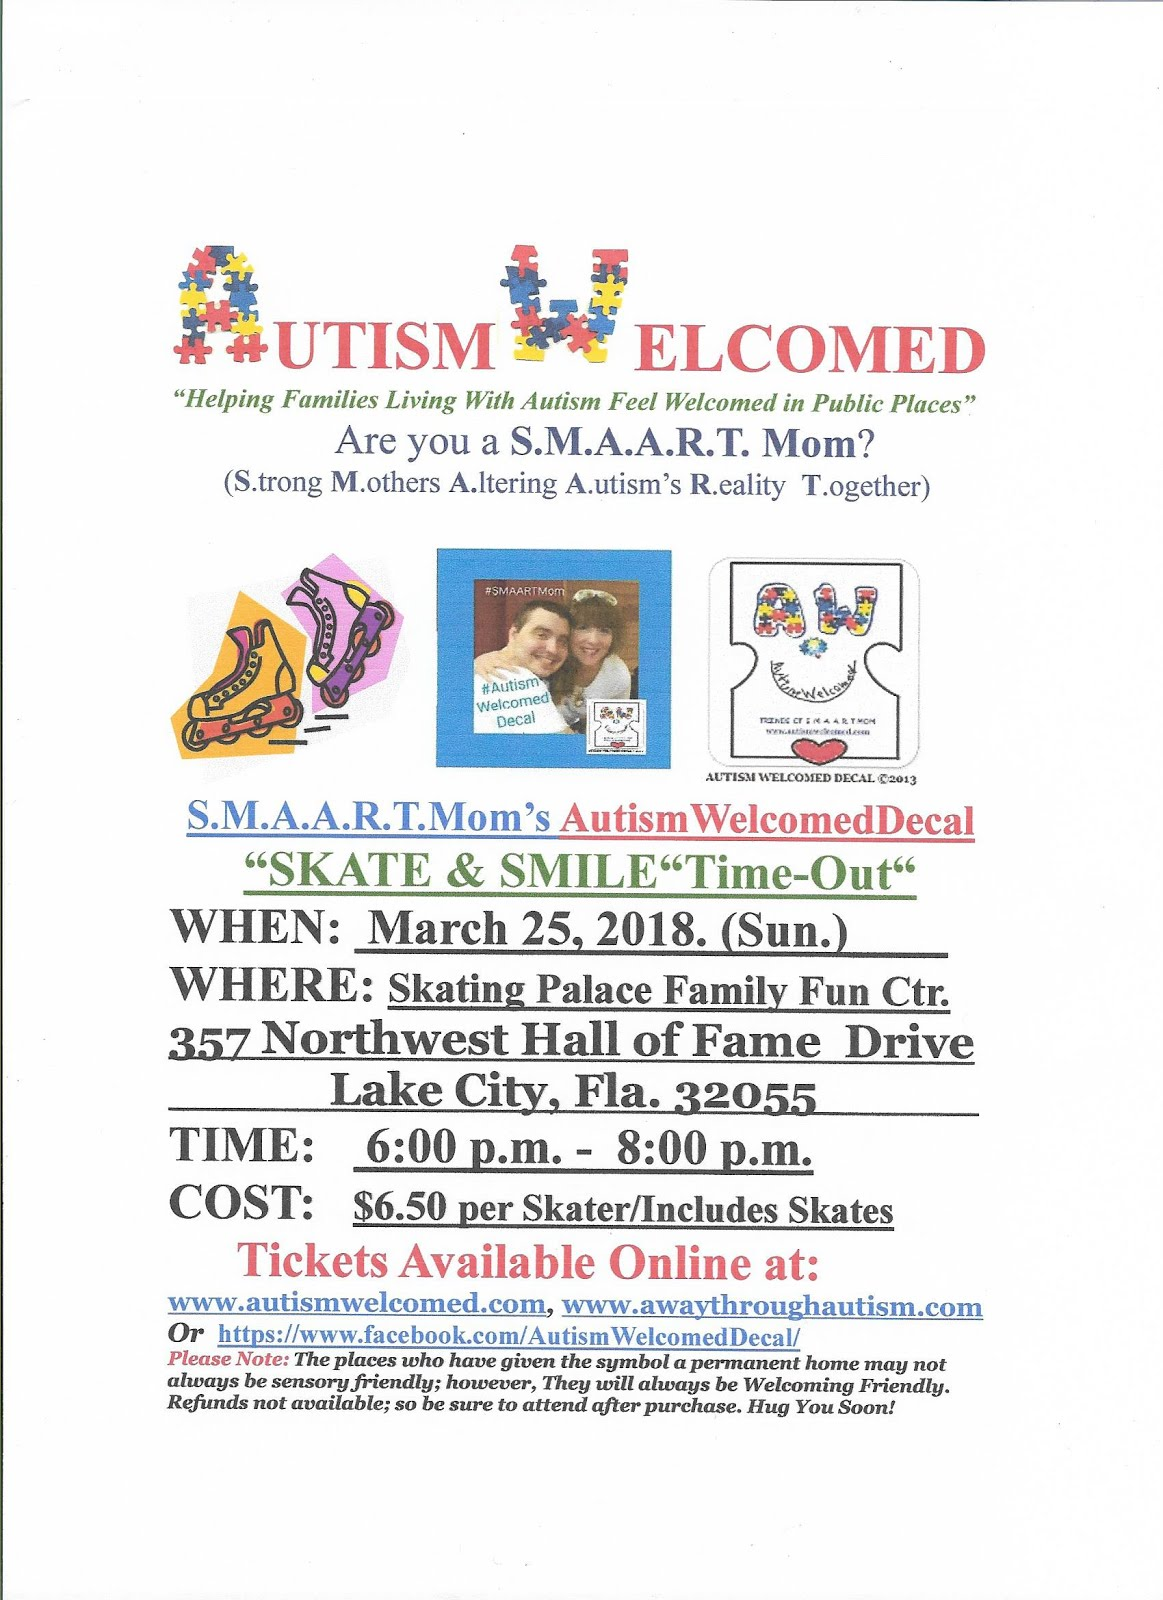 "Autism Welcomed Decal (March 25) Time-Out&Test-Drive""Skate & Smile"" Time-Out in Lake City,FL!"